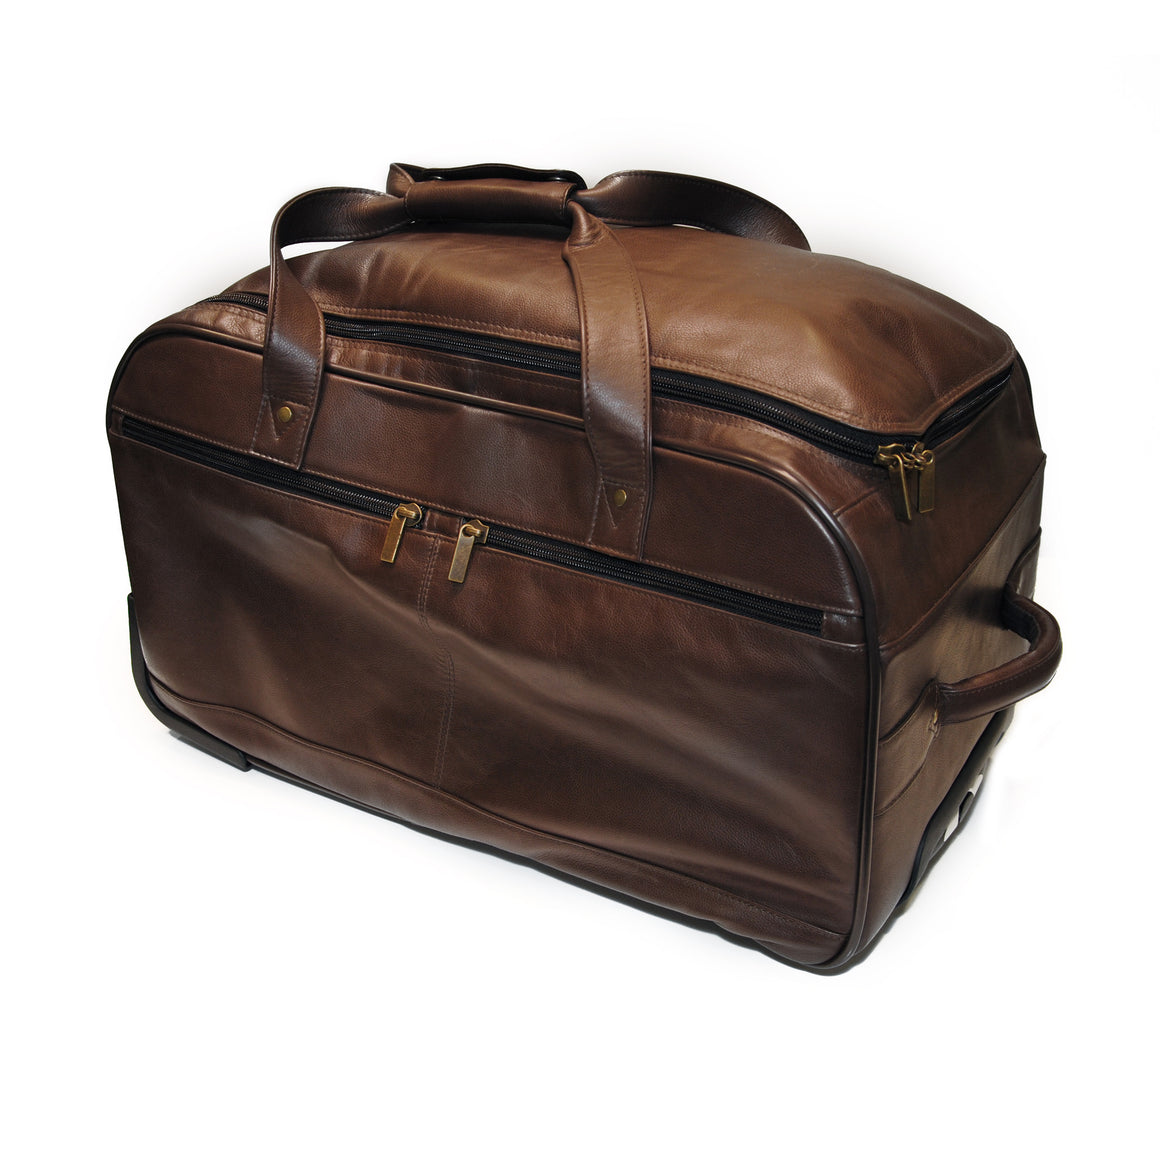 Wheeled Brown Duffle Bag, Old Fine Leather